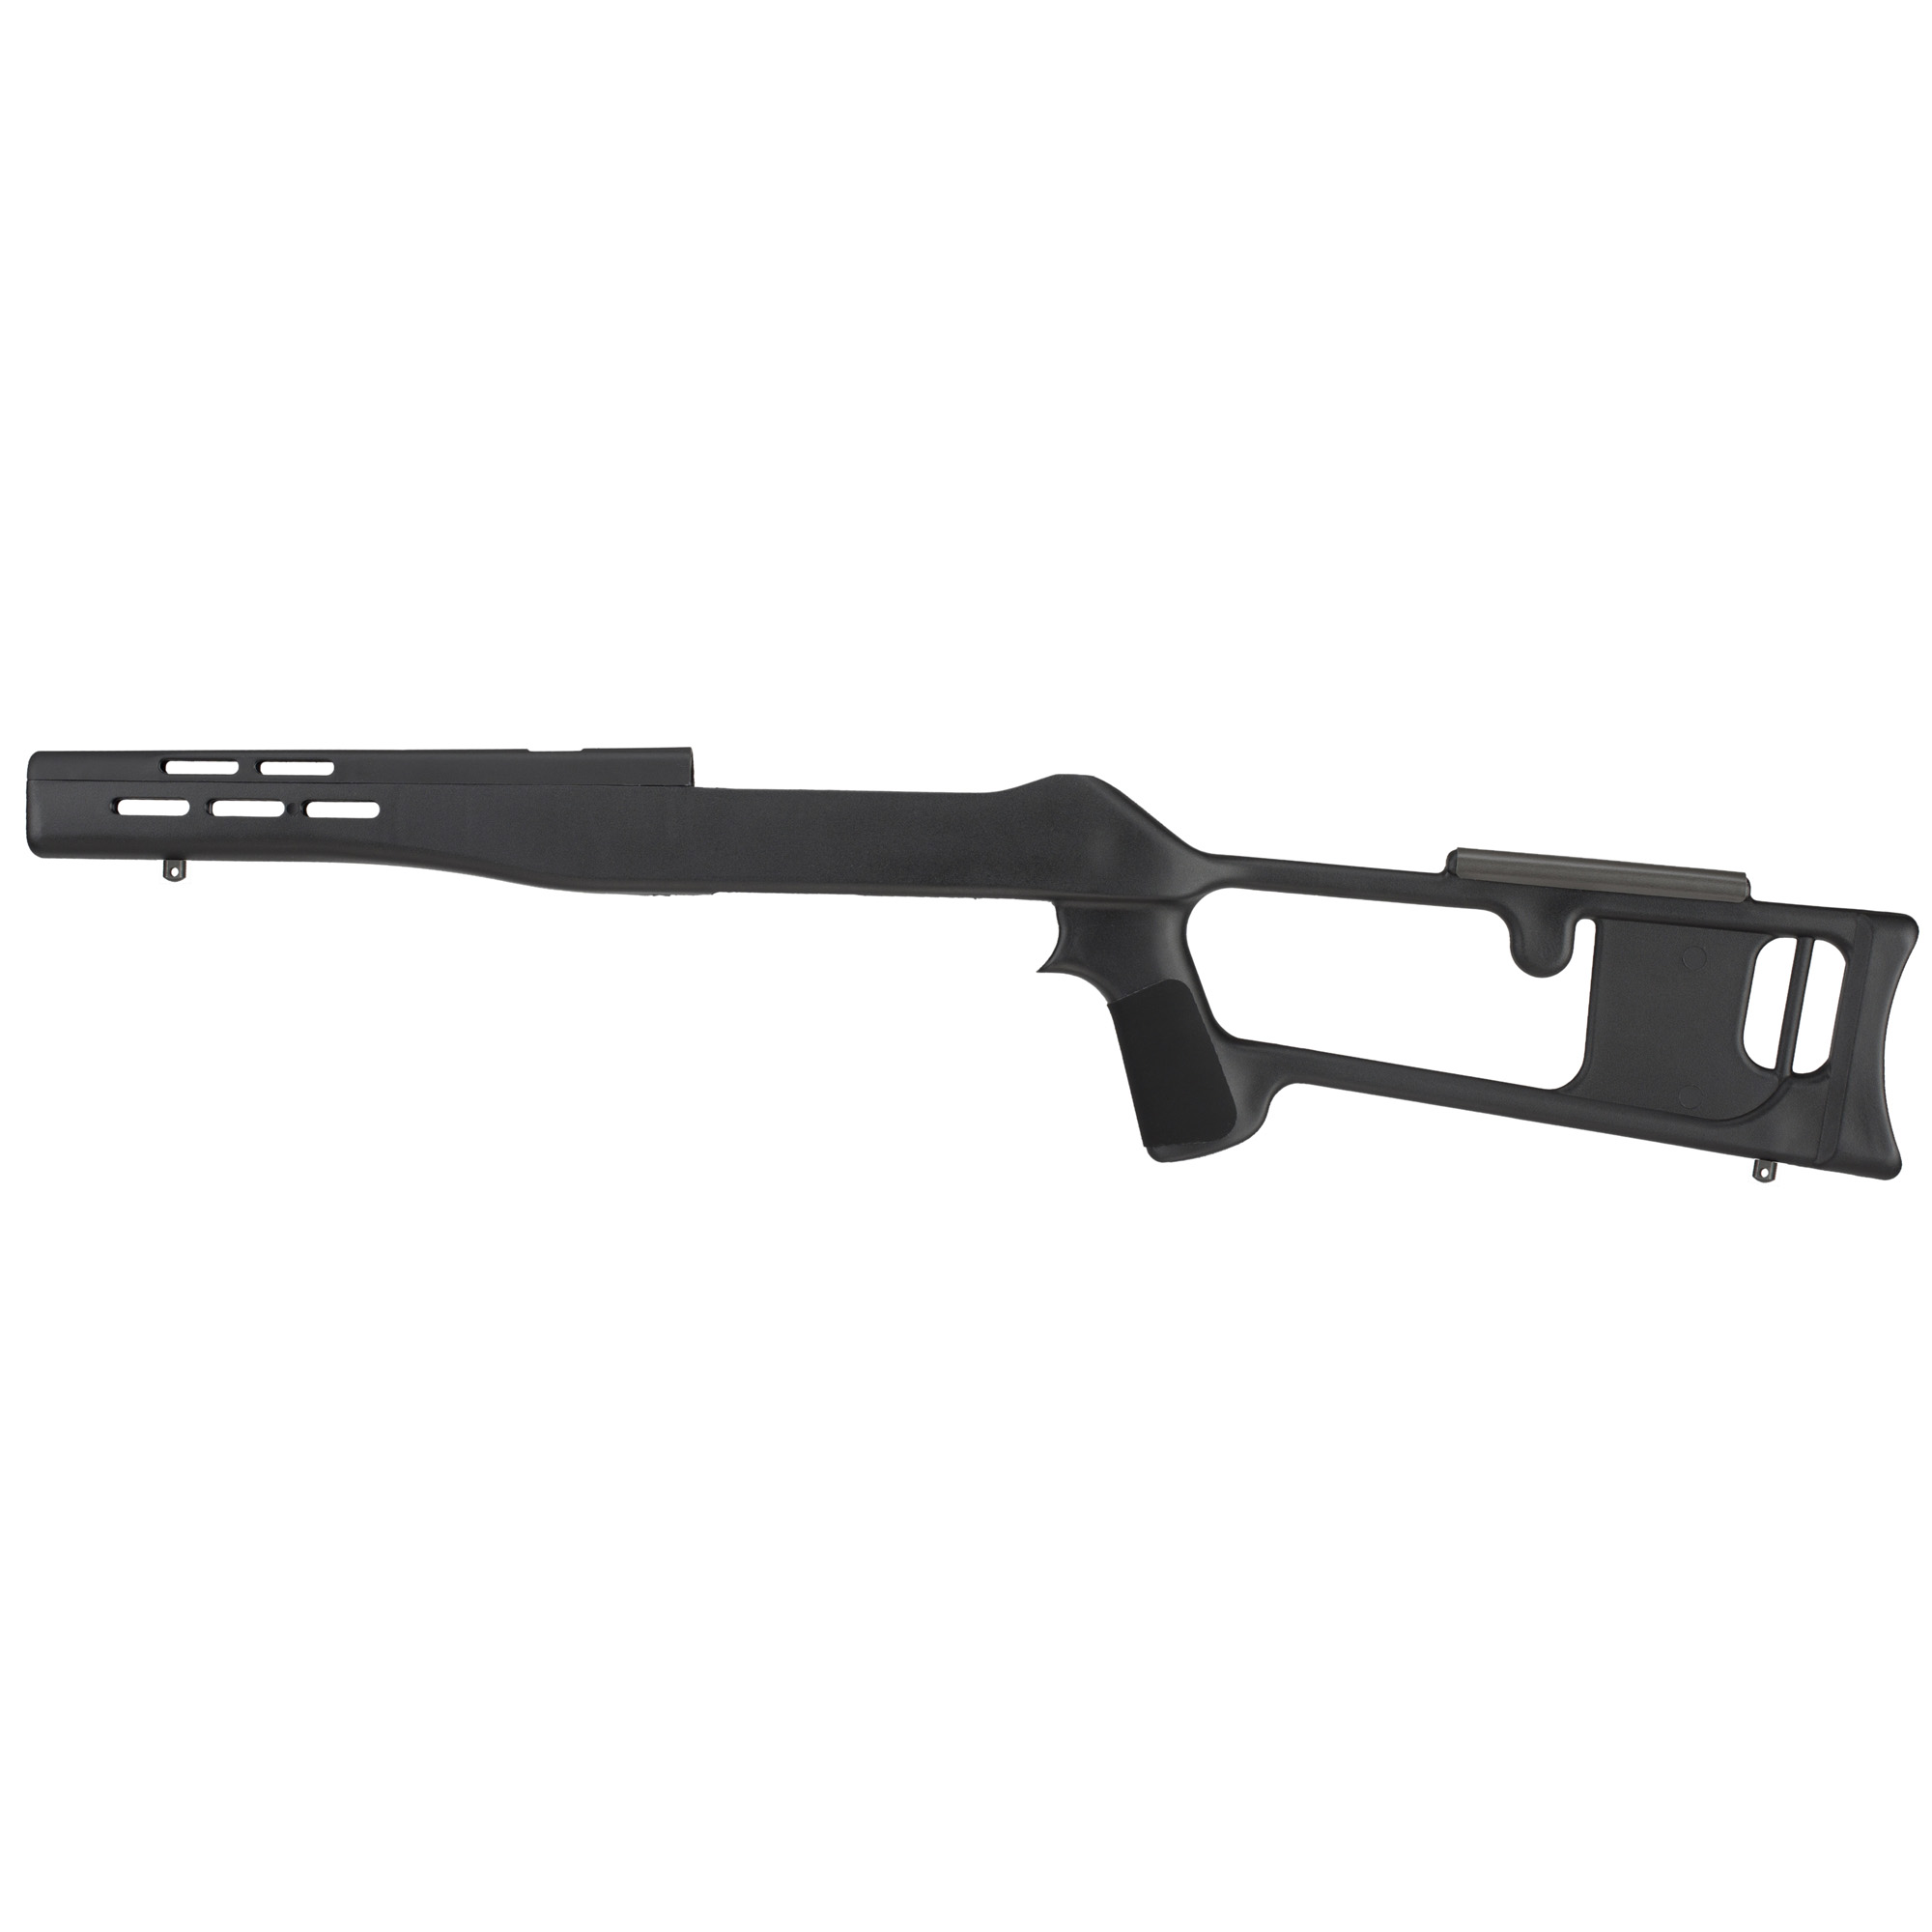 The Advanced Technology Int. Fiberforce Ruger 10/22 Thumbhole Rifle Stock fits most Ruger 10/22 but will not accommodate rifles equipped with bull barrels. Its Dragunov Military design is lightweight and has a ventilated forearm and handguard. The DuPont(R) Extreme Temperature Glass Reinforced Polymer makes this stock scratch resistant and weatherproof. The sling swivel studs will accept any standard sling swivel. Made in the USA.